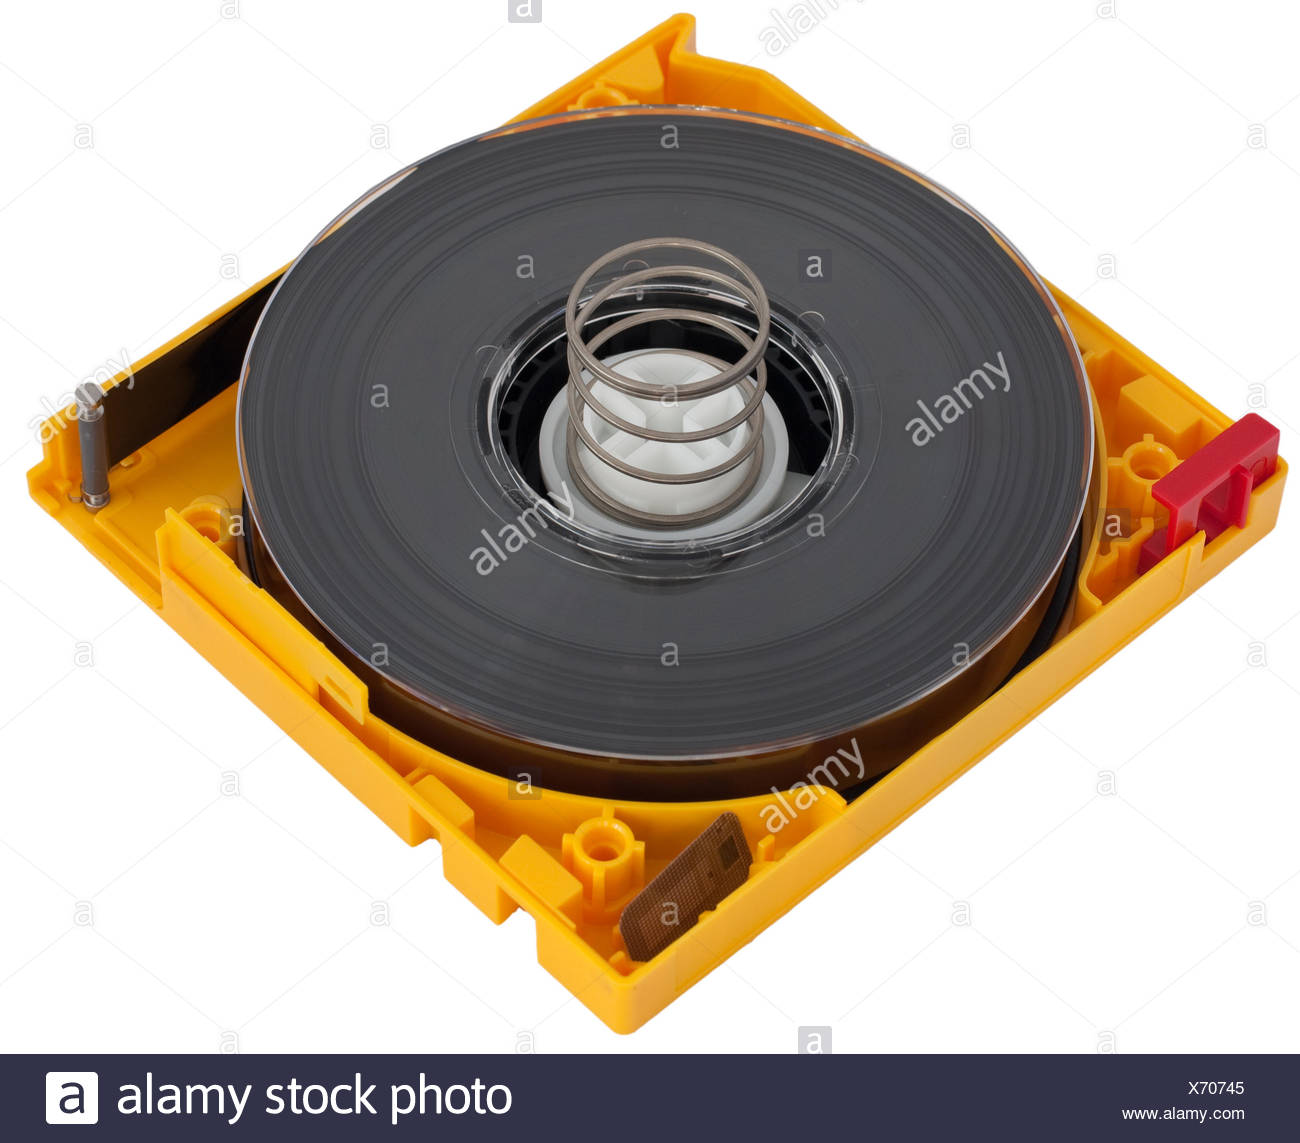 ltoultirumbandbackuprecoverybackup linear tape open rw bandcartridge - Stock Image